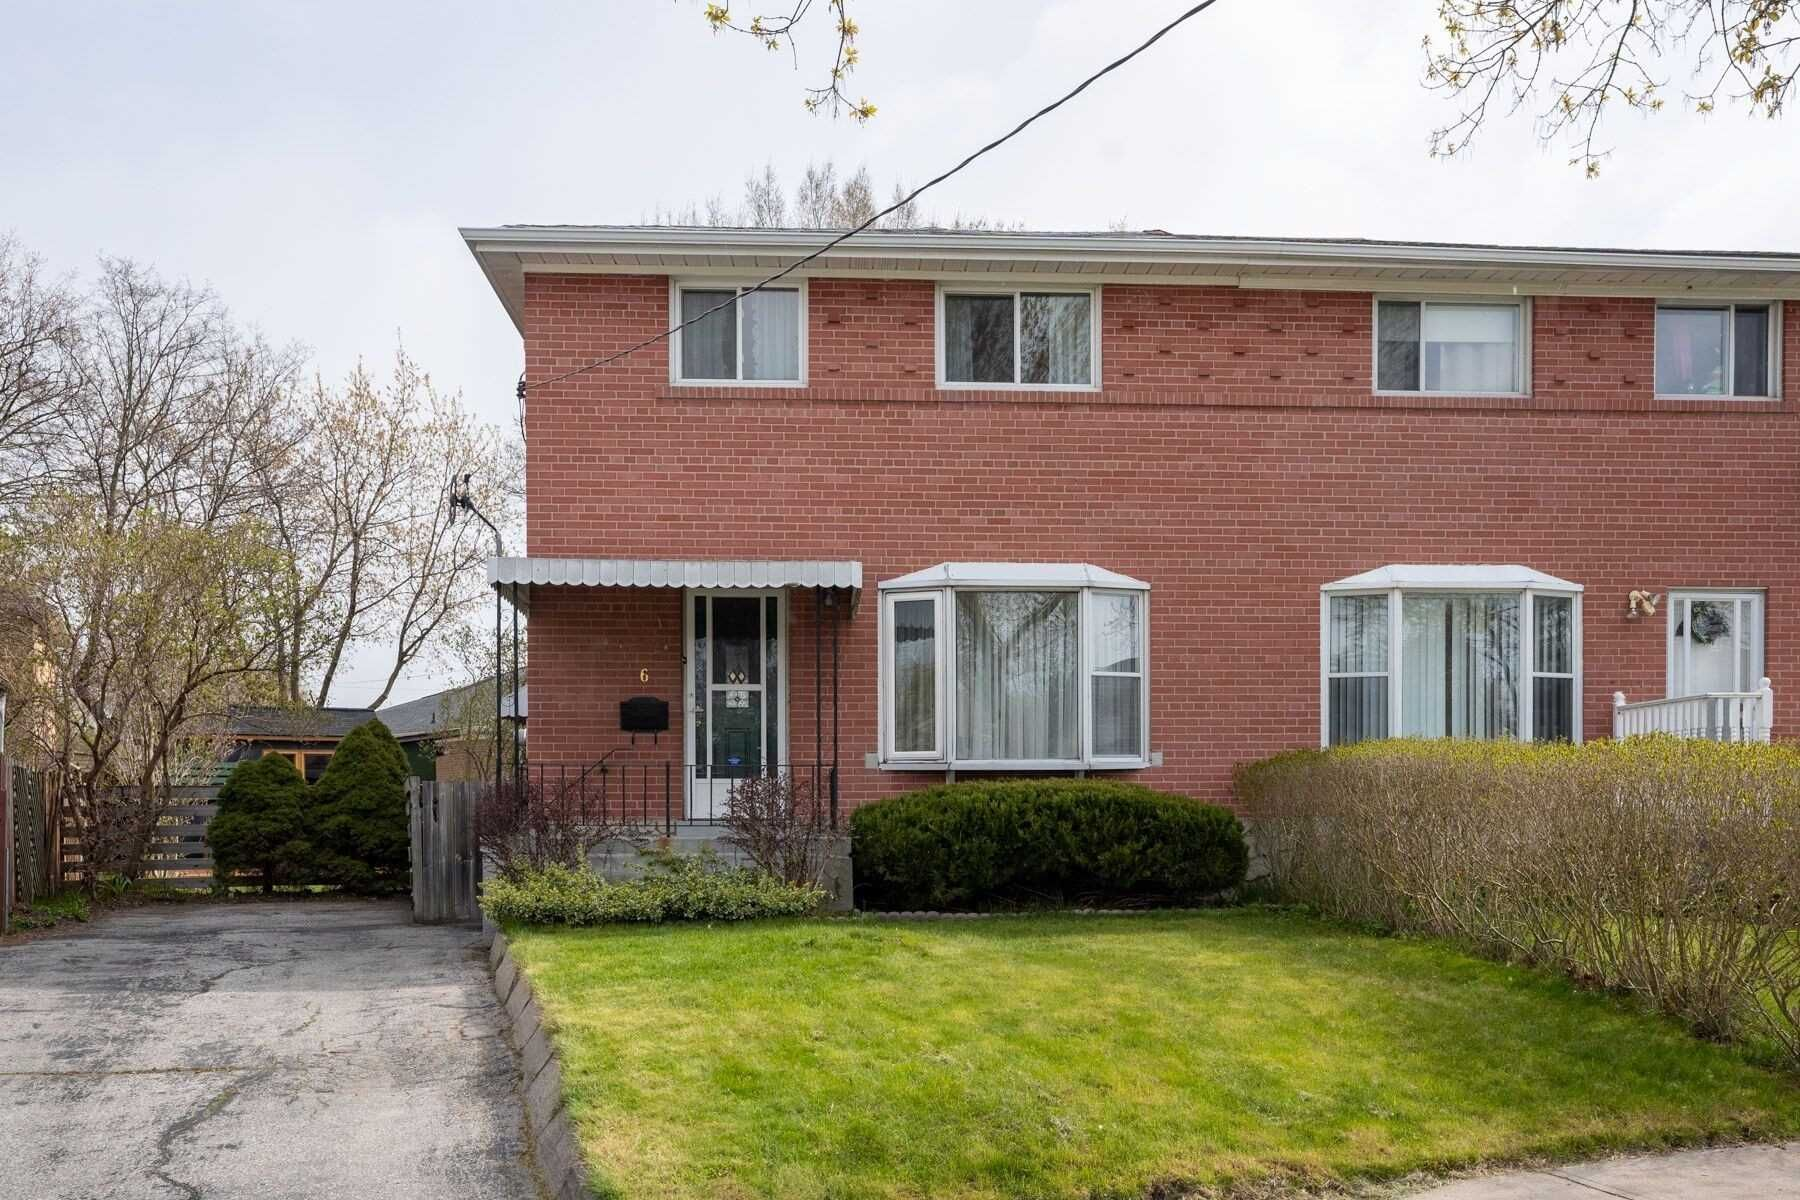 Main Photo: 6 Ares Court in Toronto: West Hill House (2-Storey) for sale (Toronto E10)  : MLS®# E4759204